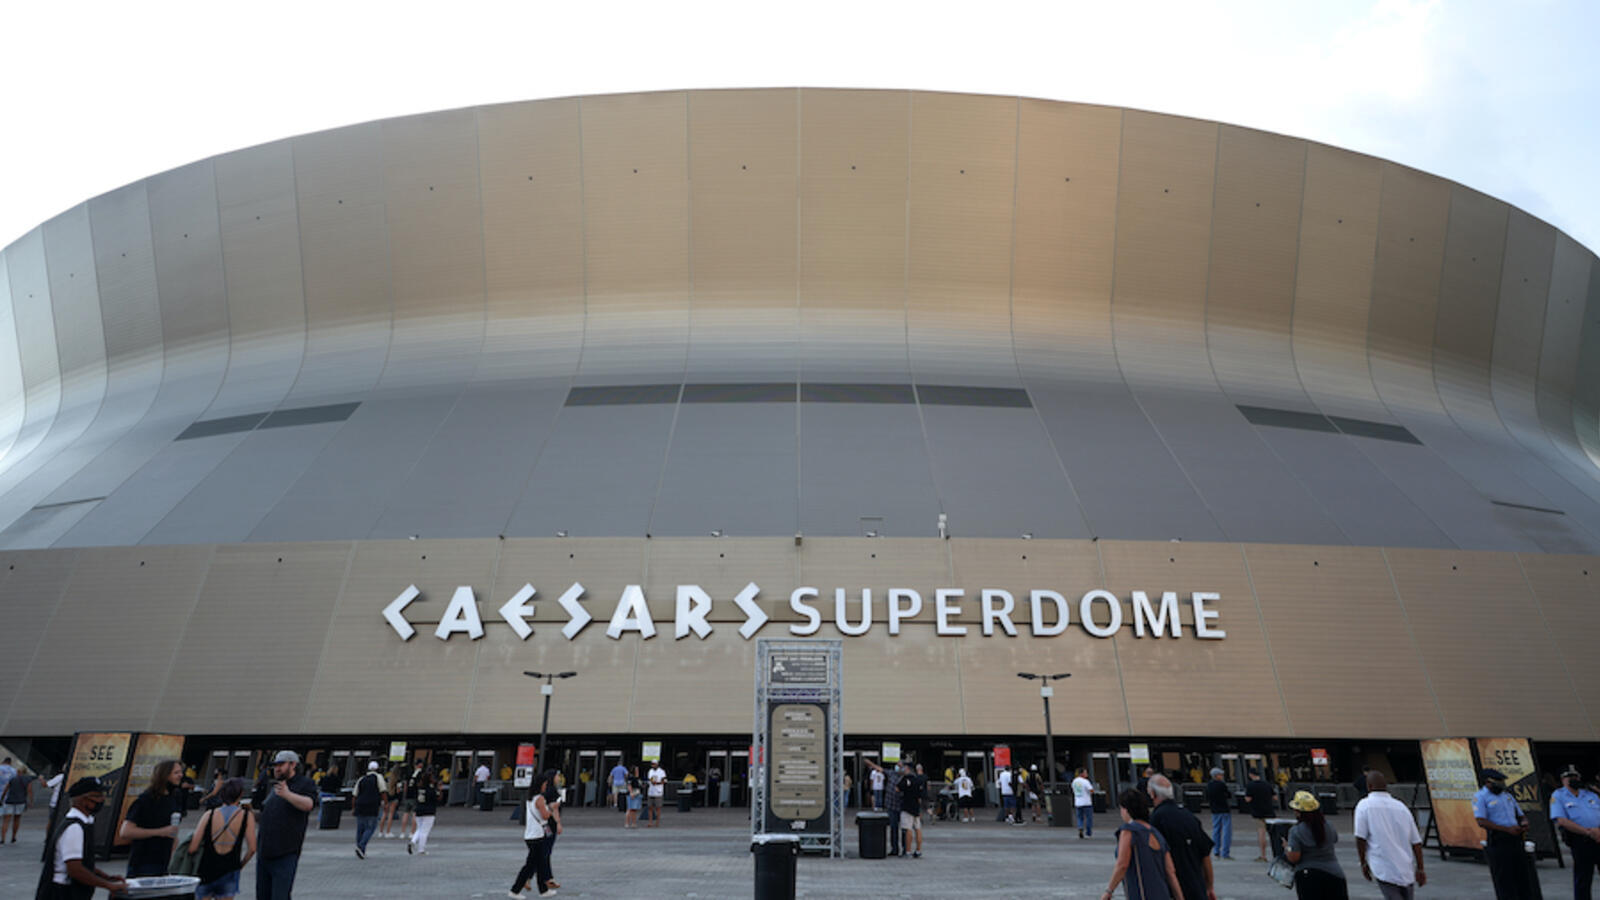 WATCH: New Orleans' Superdome Appears To Be On Fire